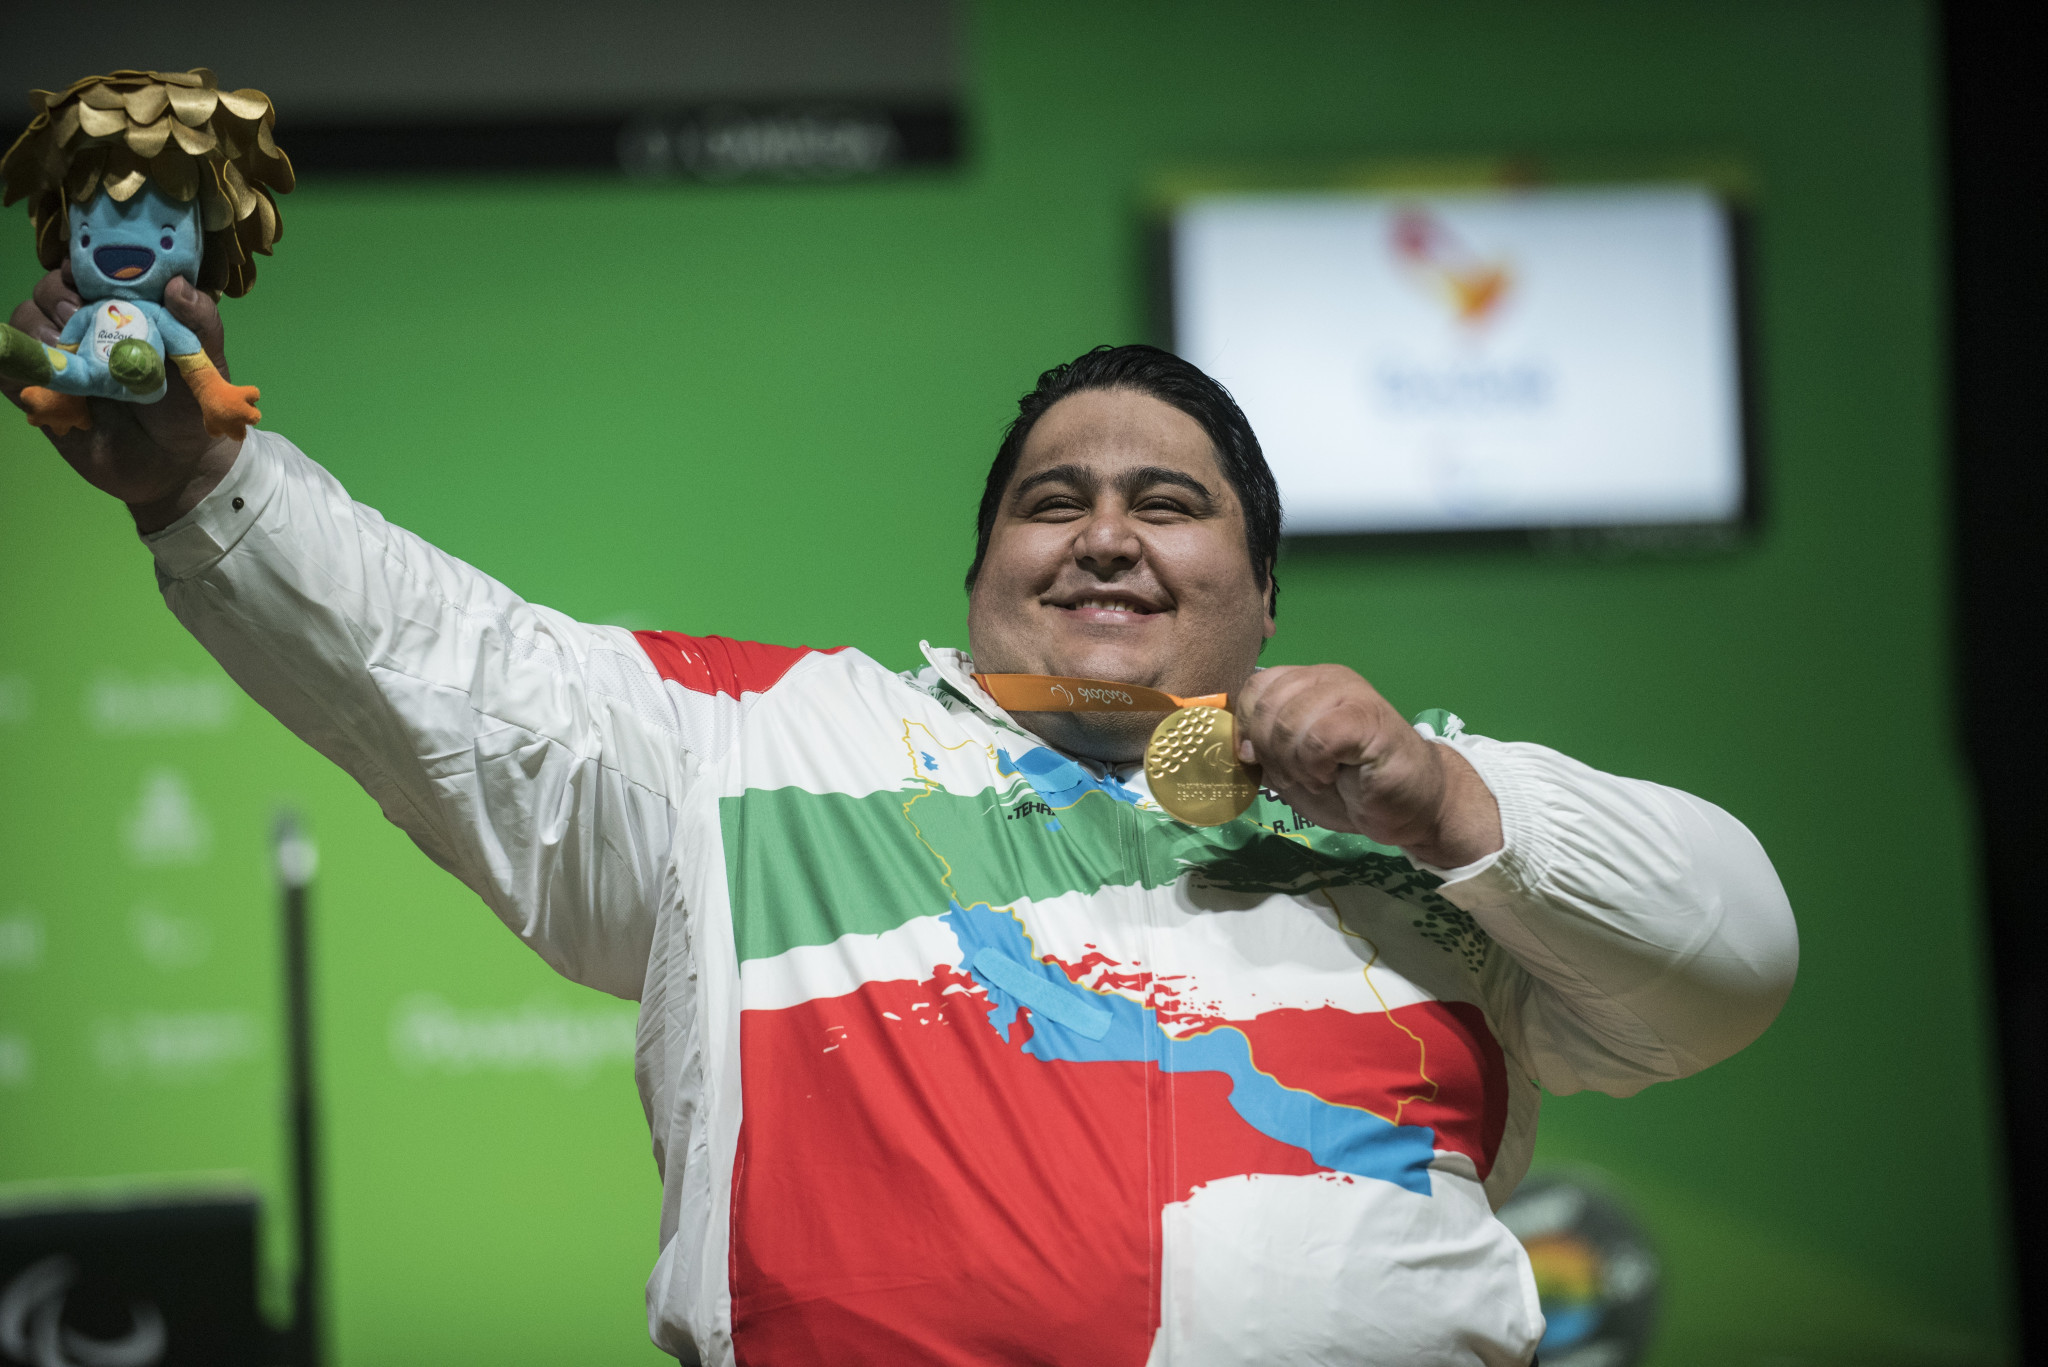 Powerlifter Pourmirzaei unveils image of late Rahman in emotional medal ceremony